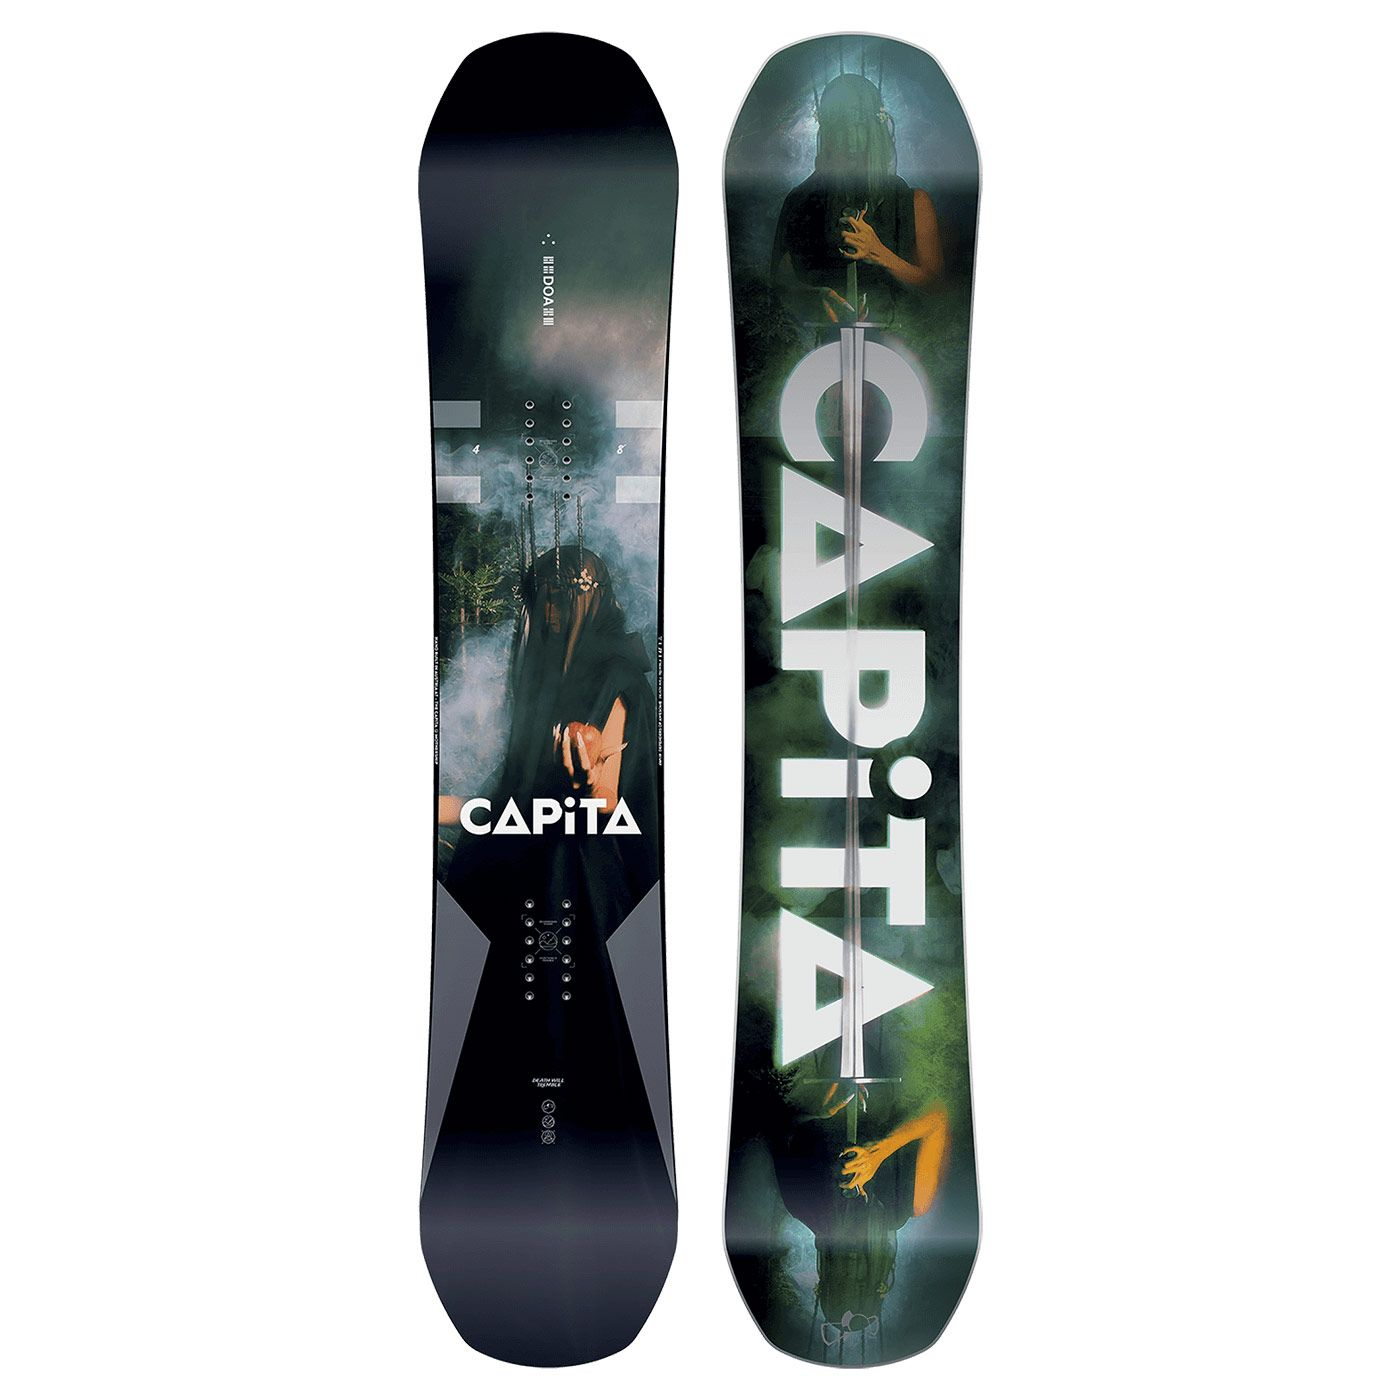 The NEW Capita DOA Defenders Of Awesome Snowboard In Now